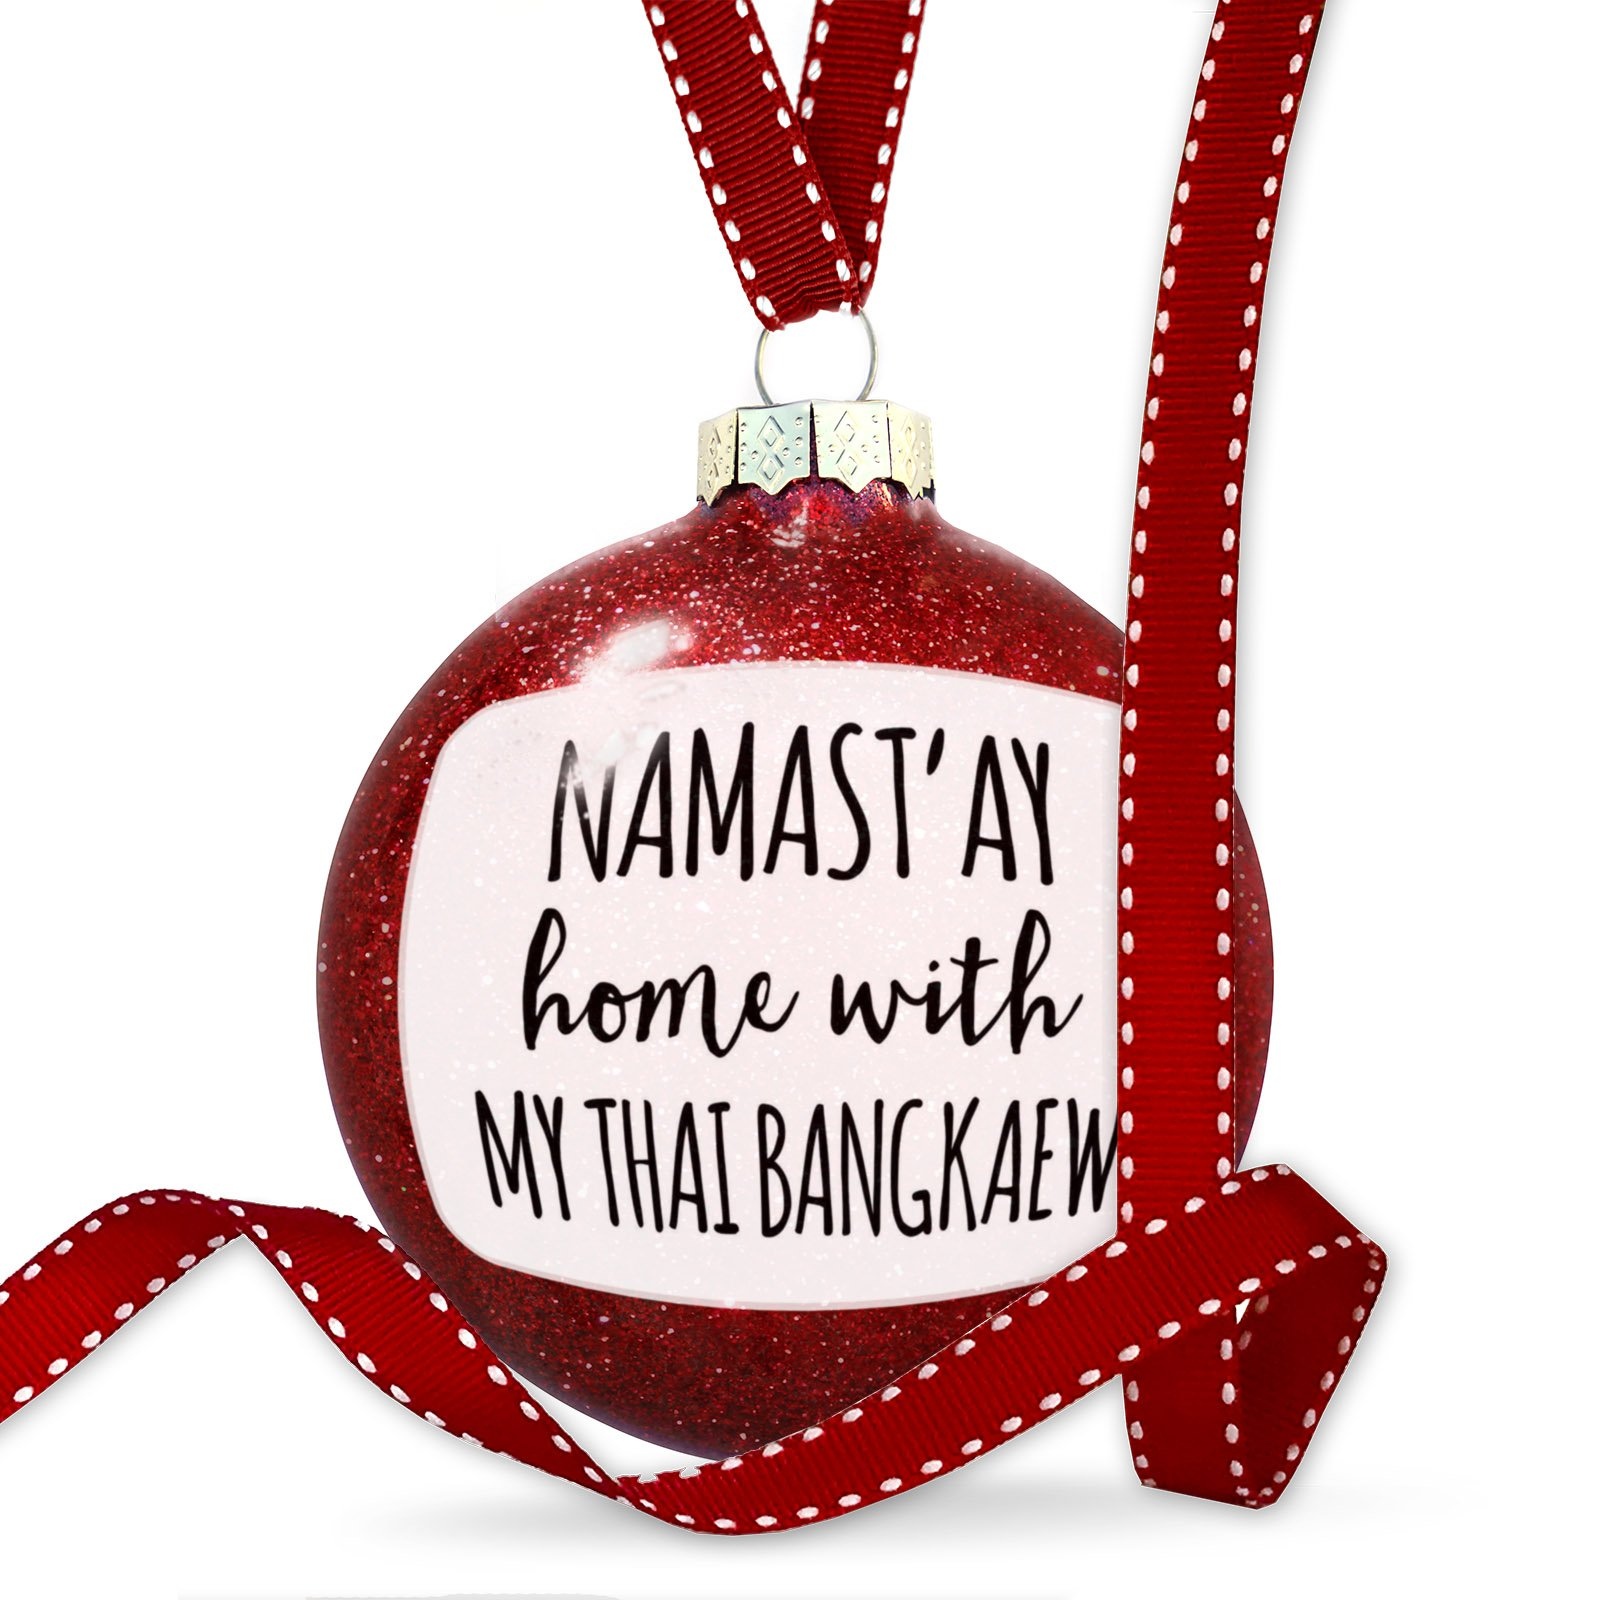 Christmas Decoration Namast'ay Home With My Thai Bangkaew Simple Sayings Ornament by NEONBLOND